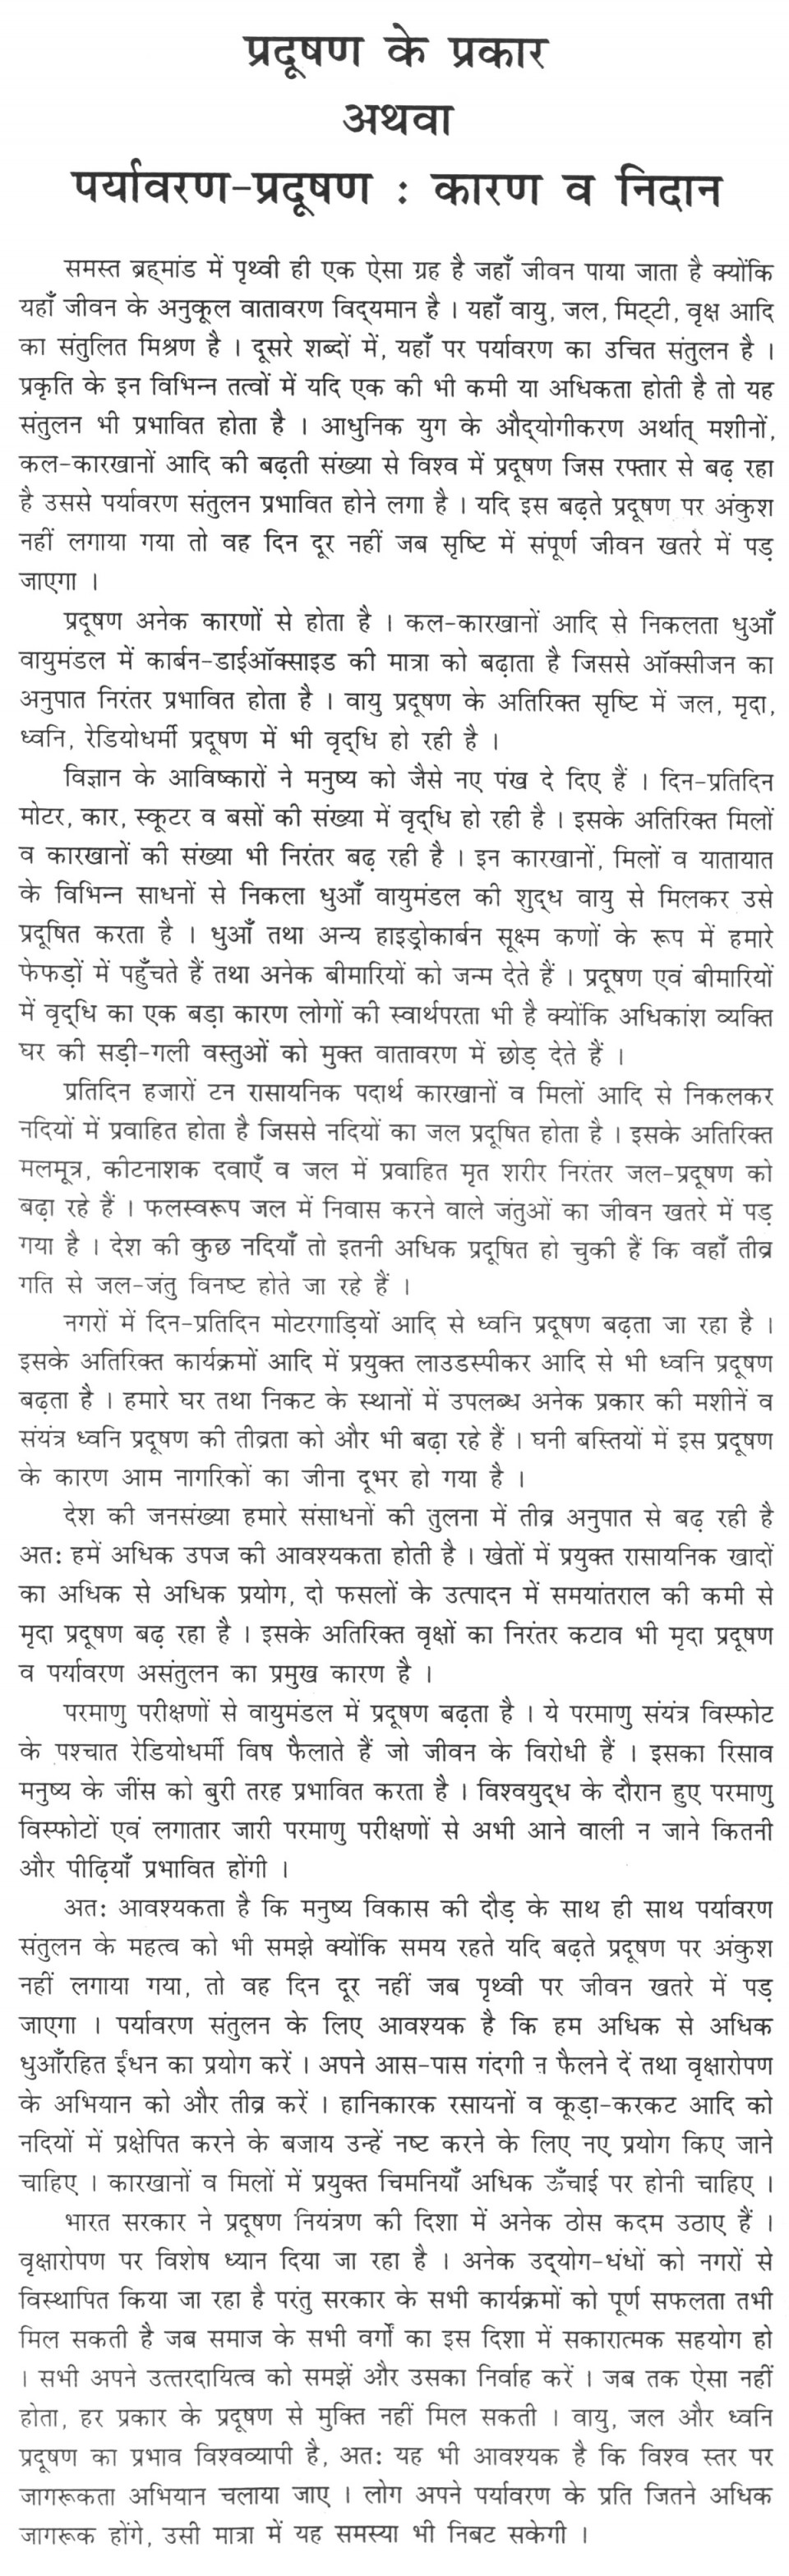 014 Good Habits Essay In Hindi Exceptional Food Habit 960